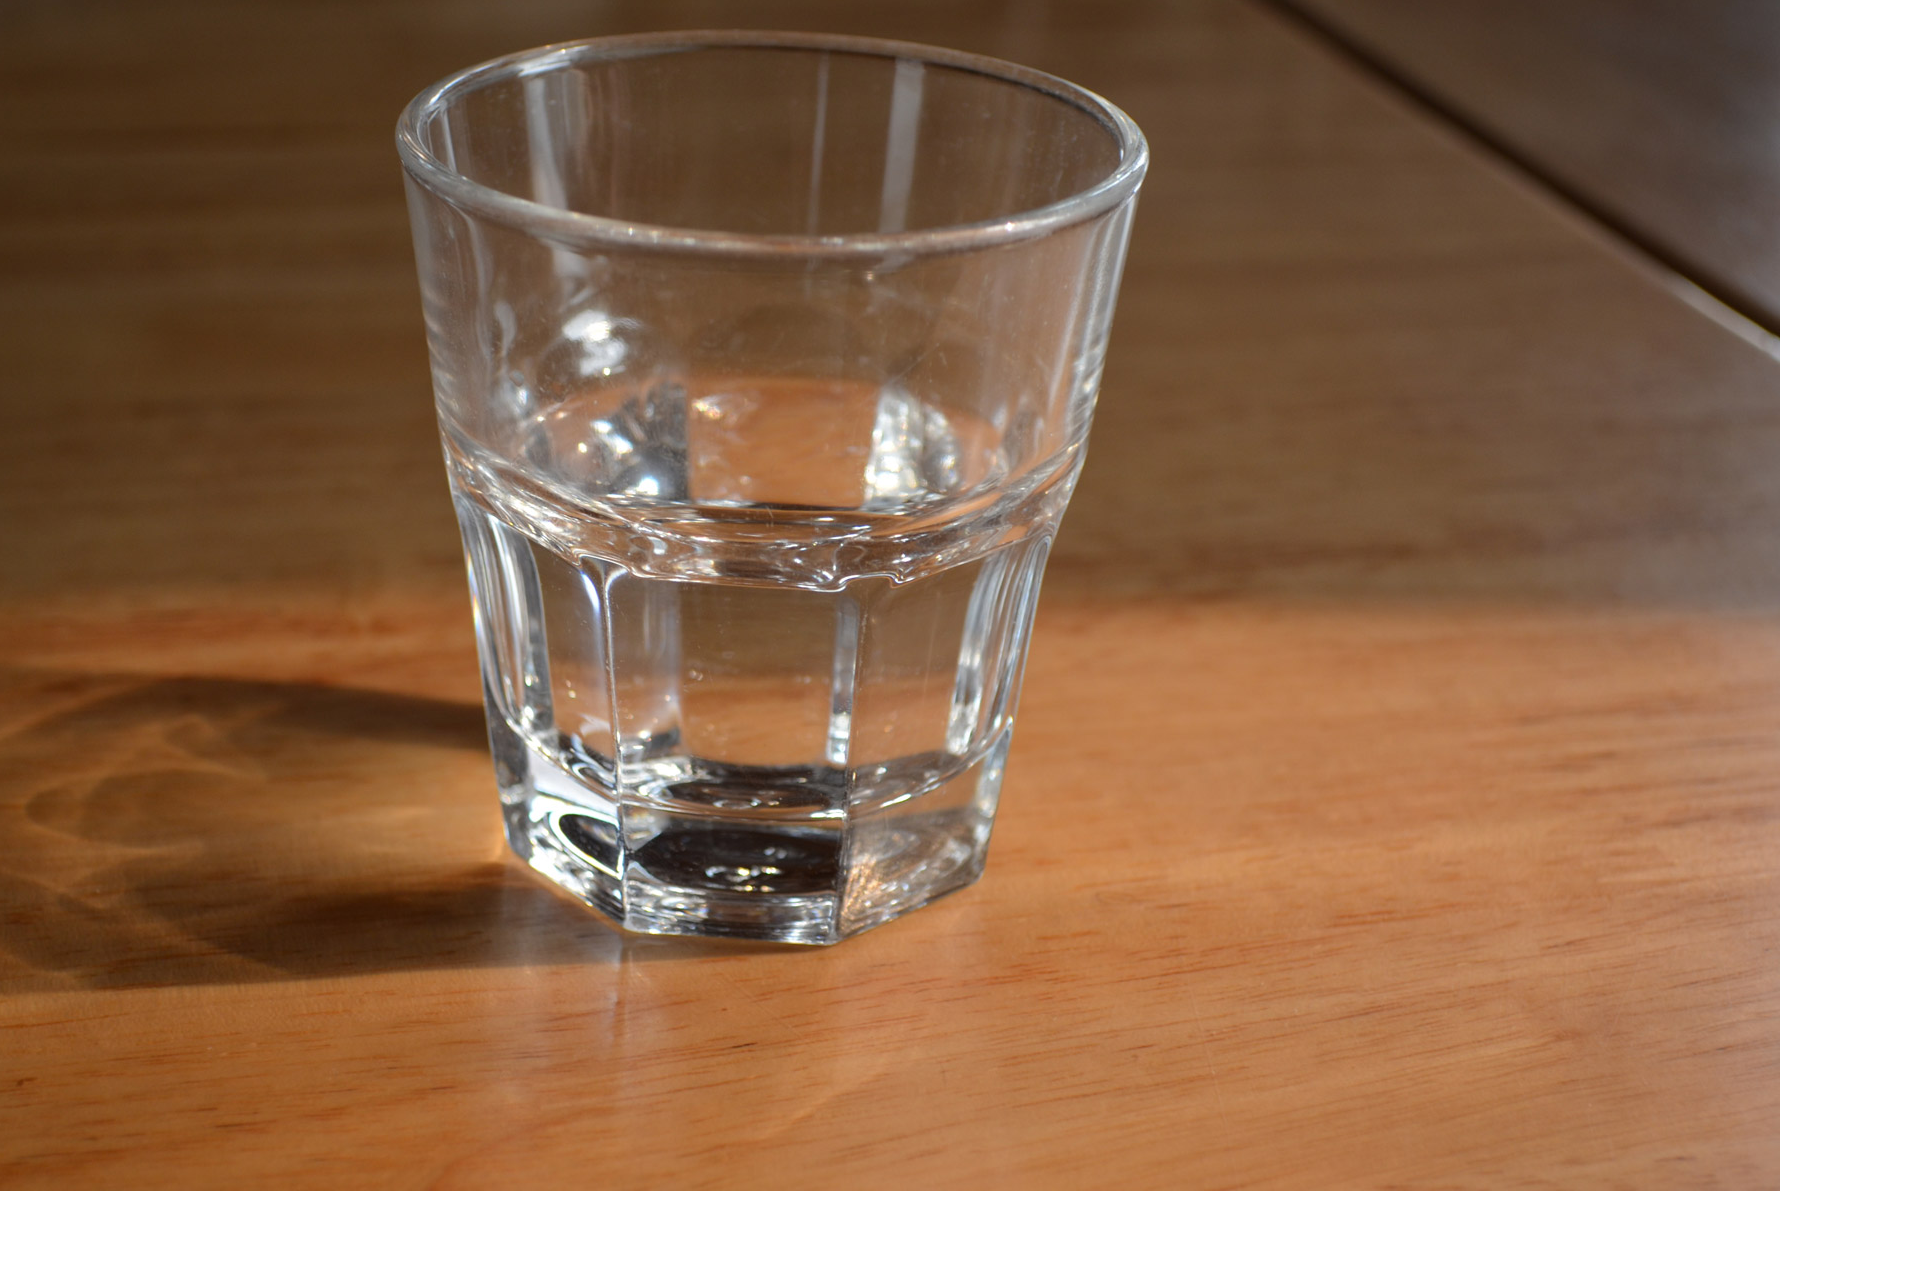 glass of water necessary for glowing complexion